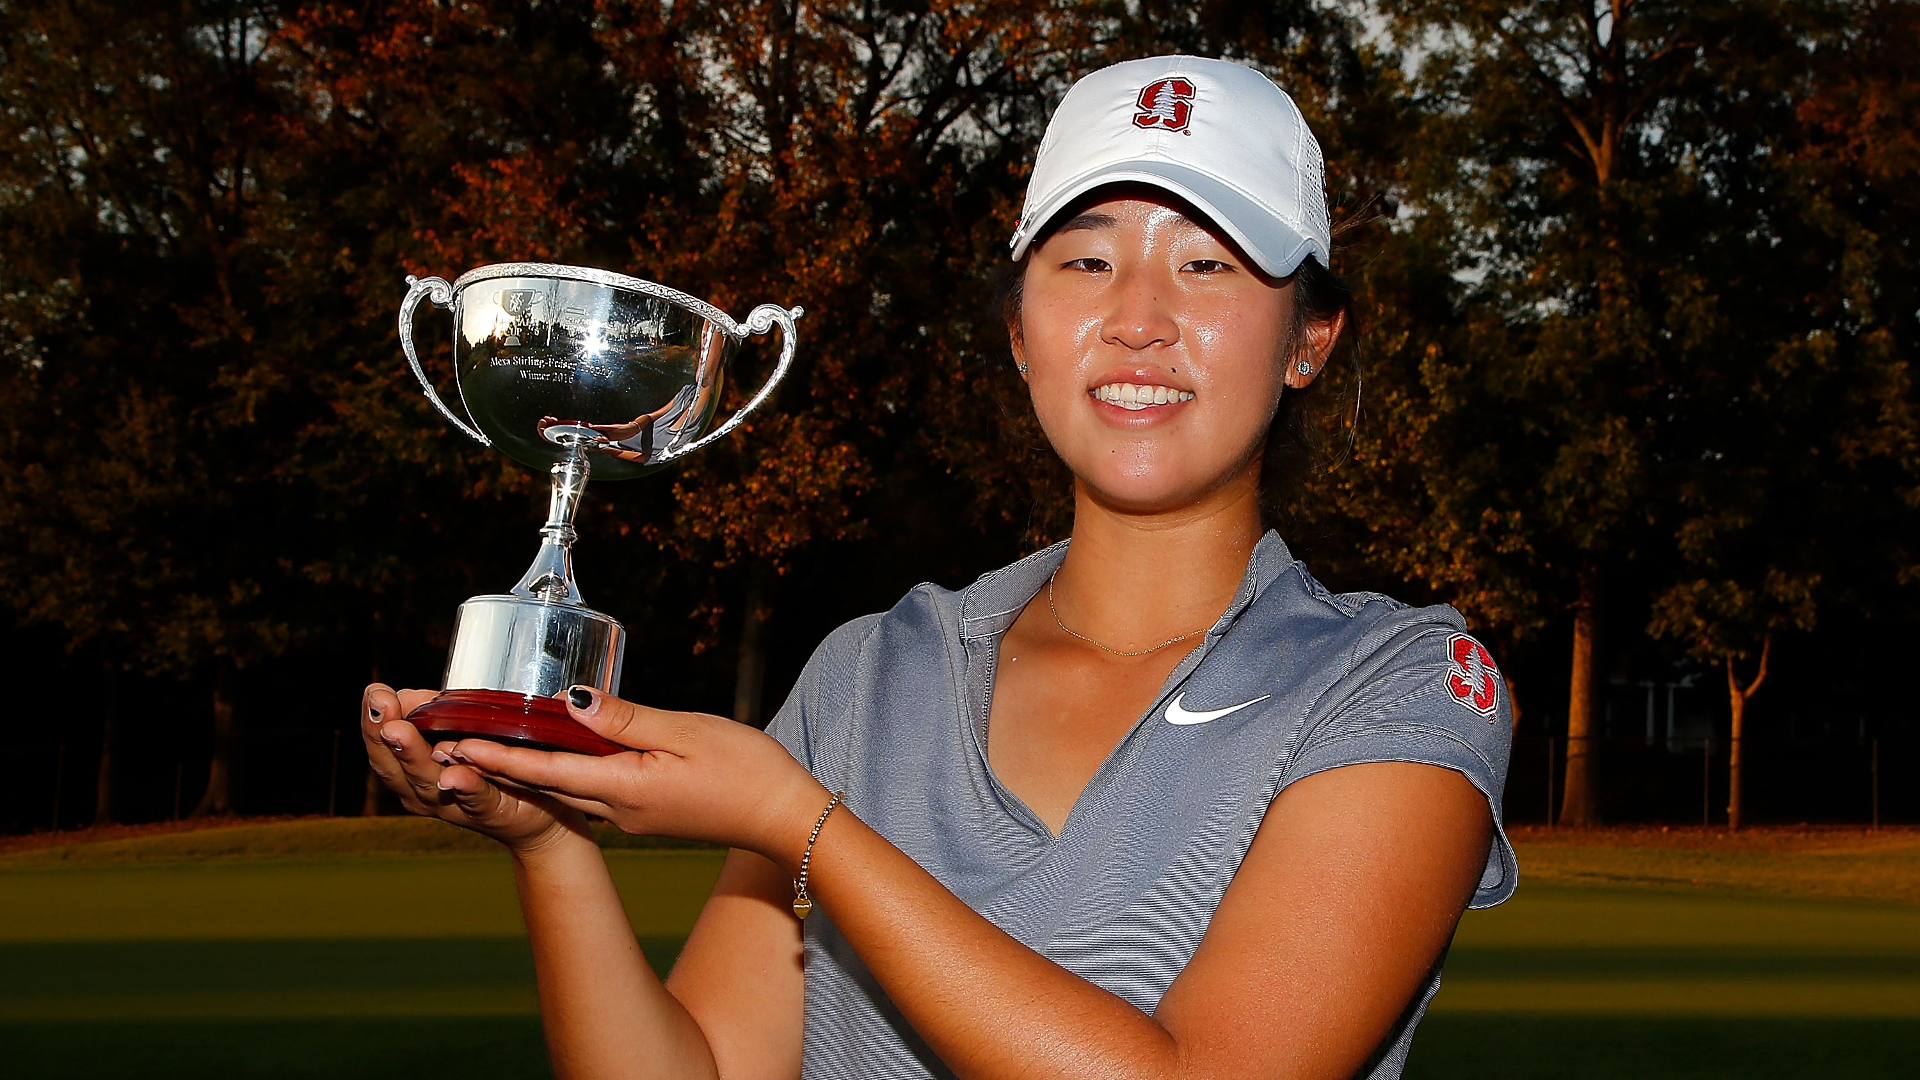 http://golfchannel-a.akamaihd.net/ramp/998/247/andrea_lee_2016_east_lake_cup_trophy.jpg